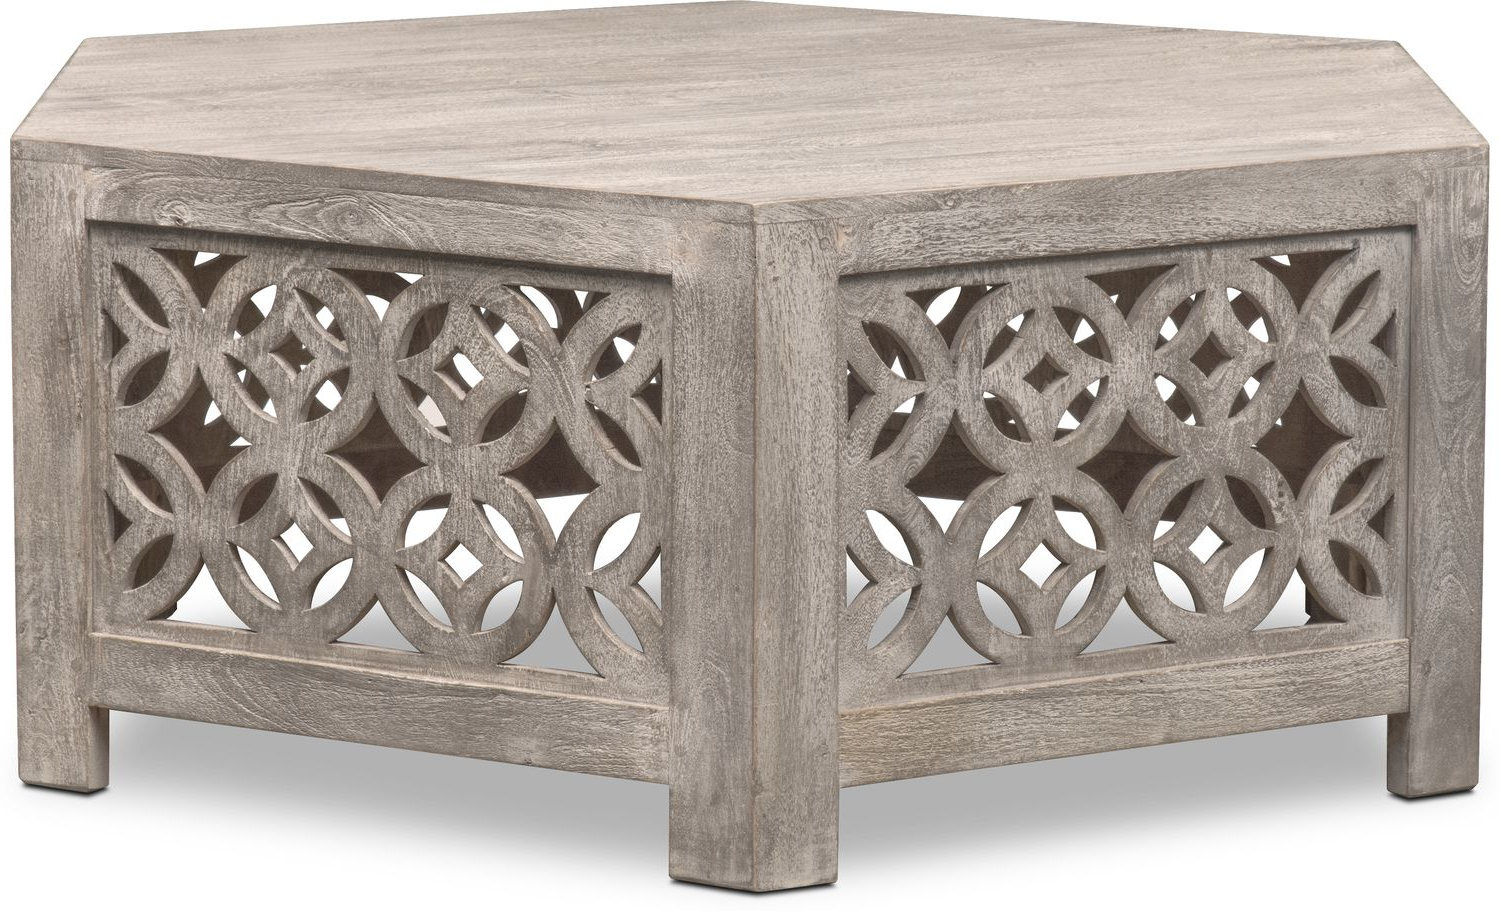 Value City Furniture And Mattresses Intended For Favorite Raven Grey Tv Stands (View 10 of 20)